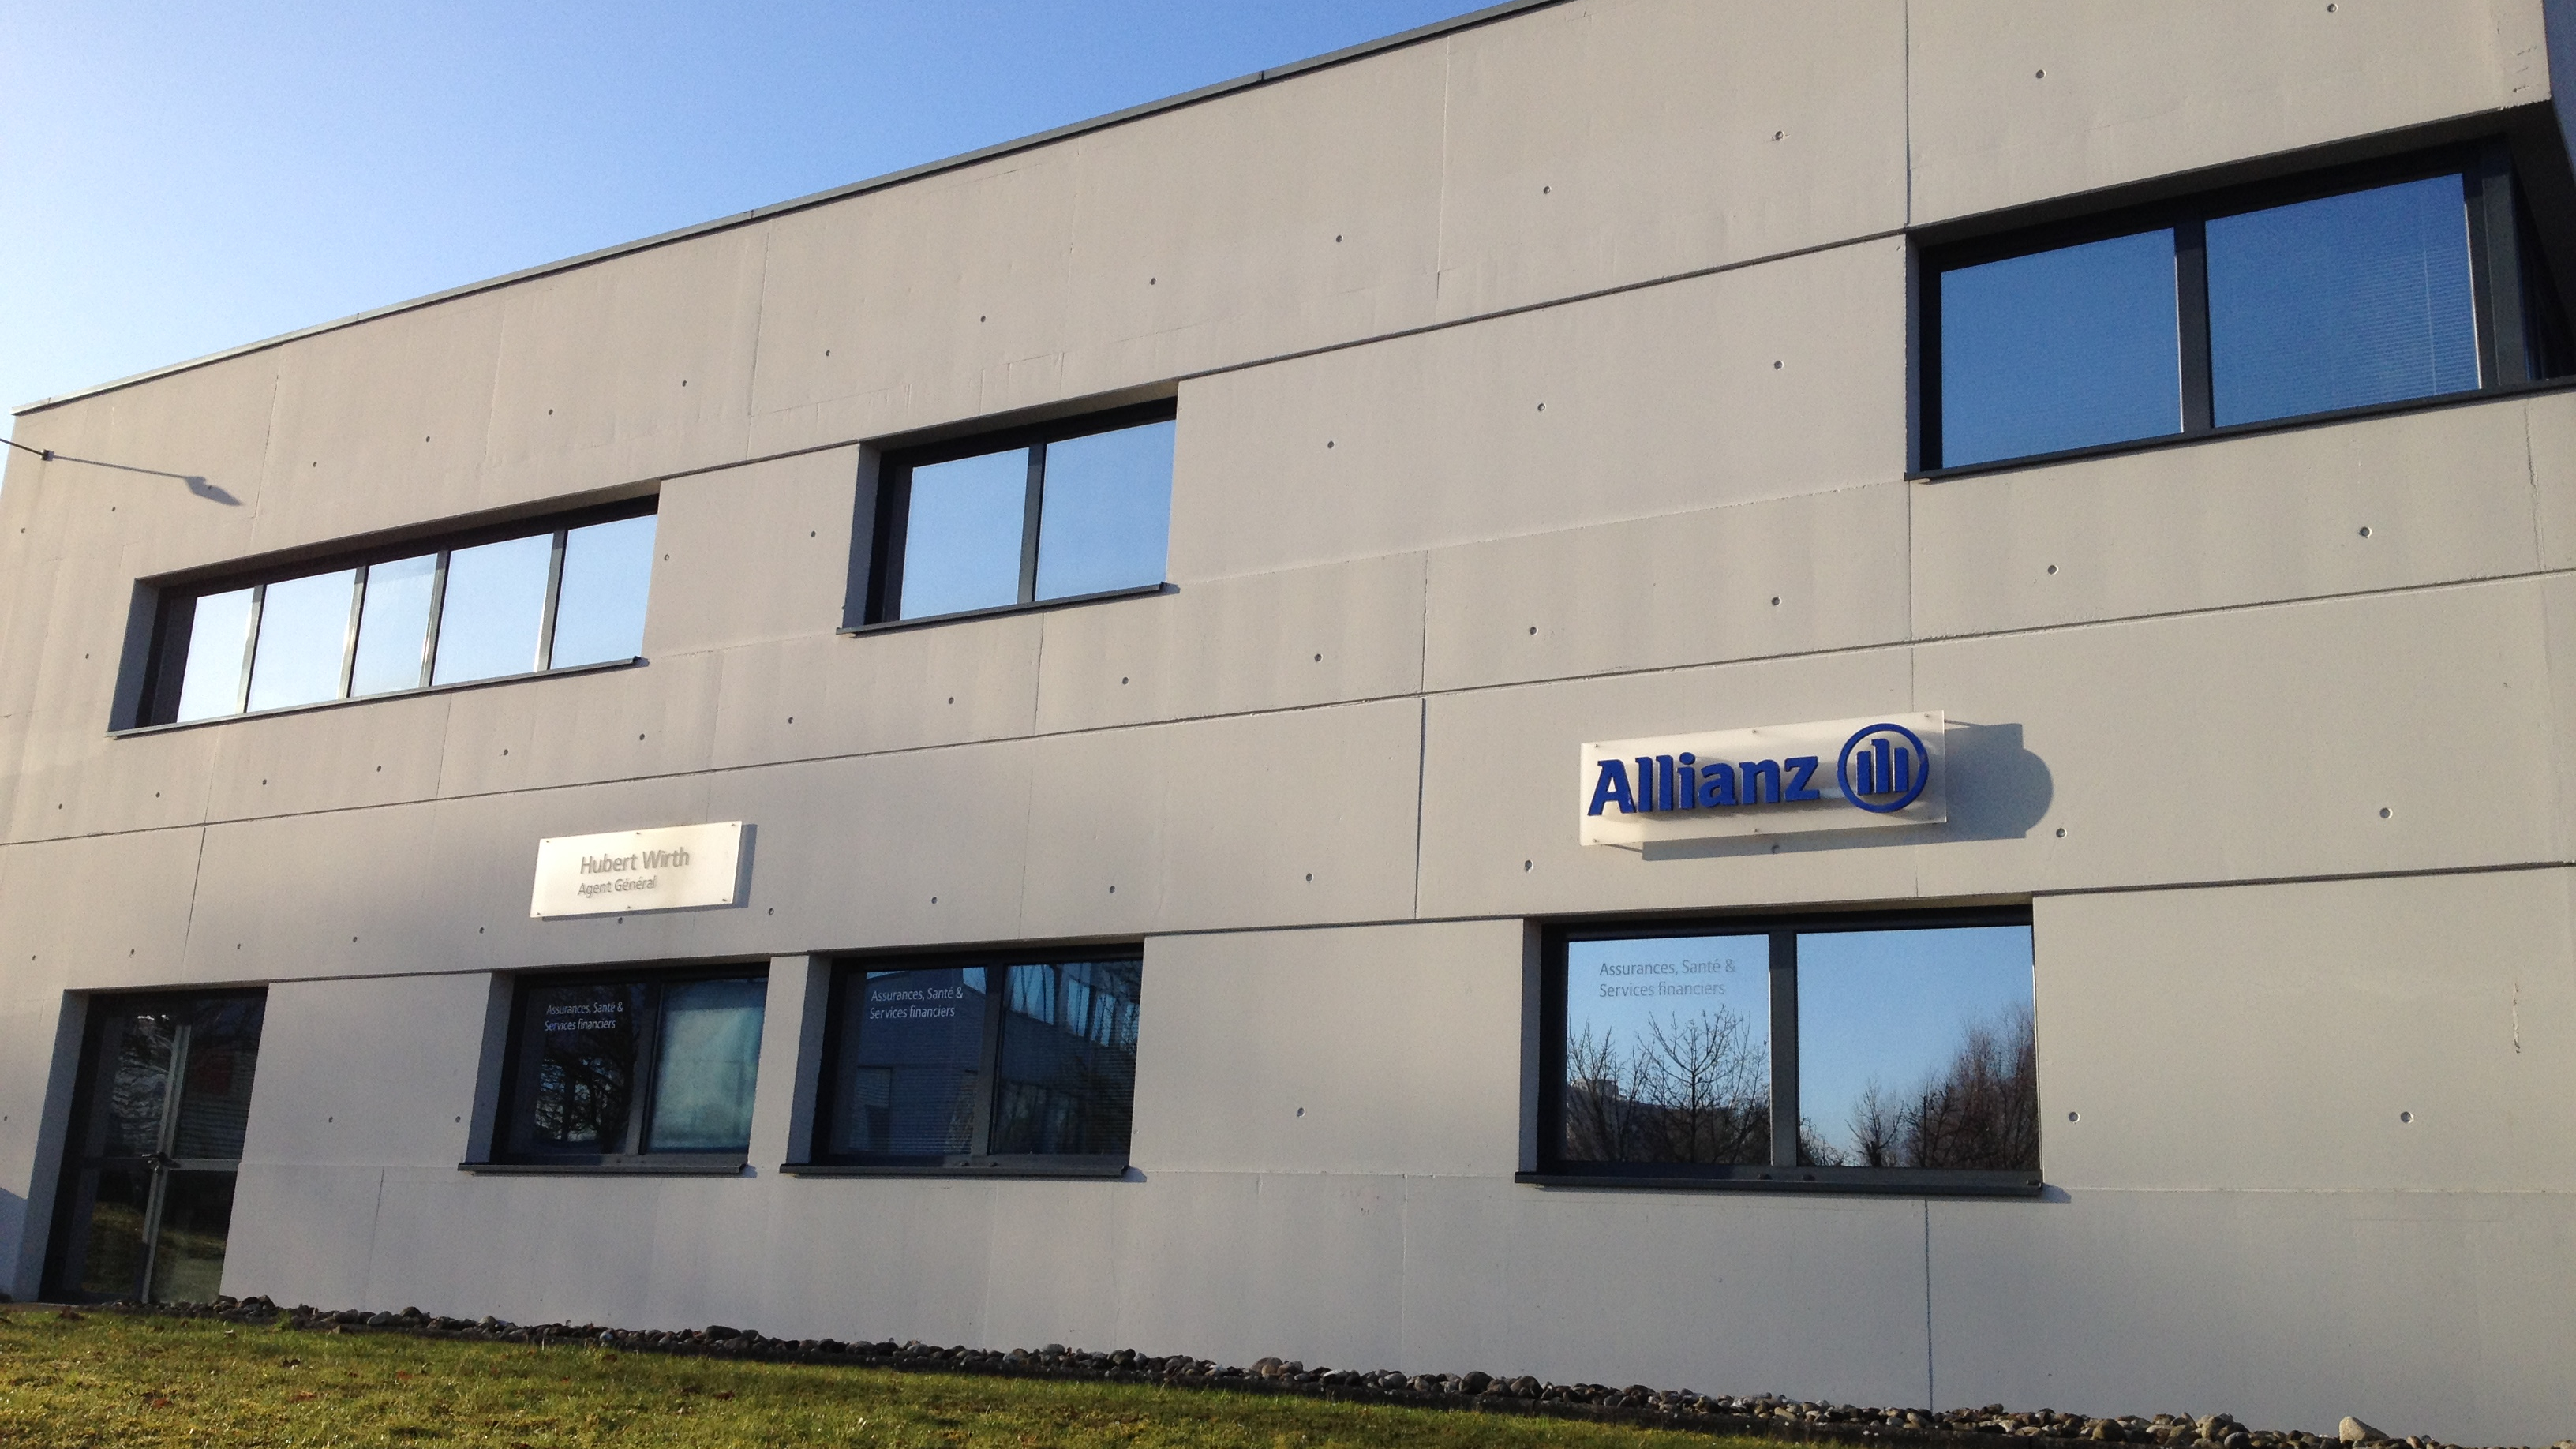 Allianz Mulhouse - Hubert WIRTH